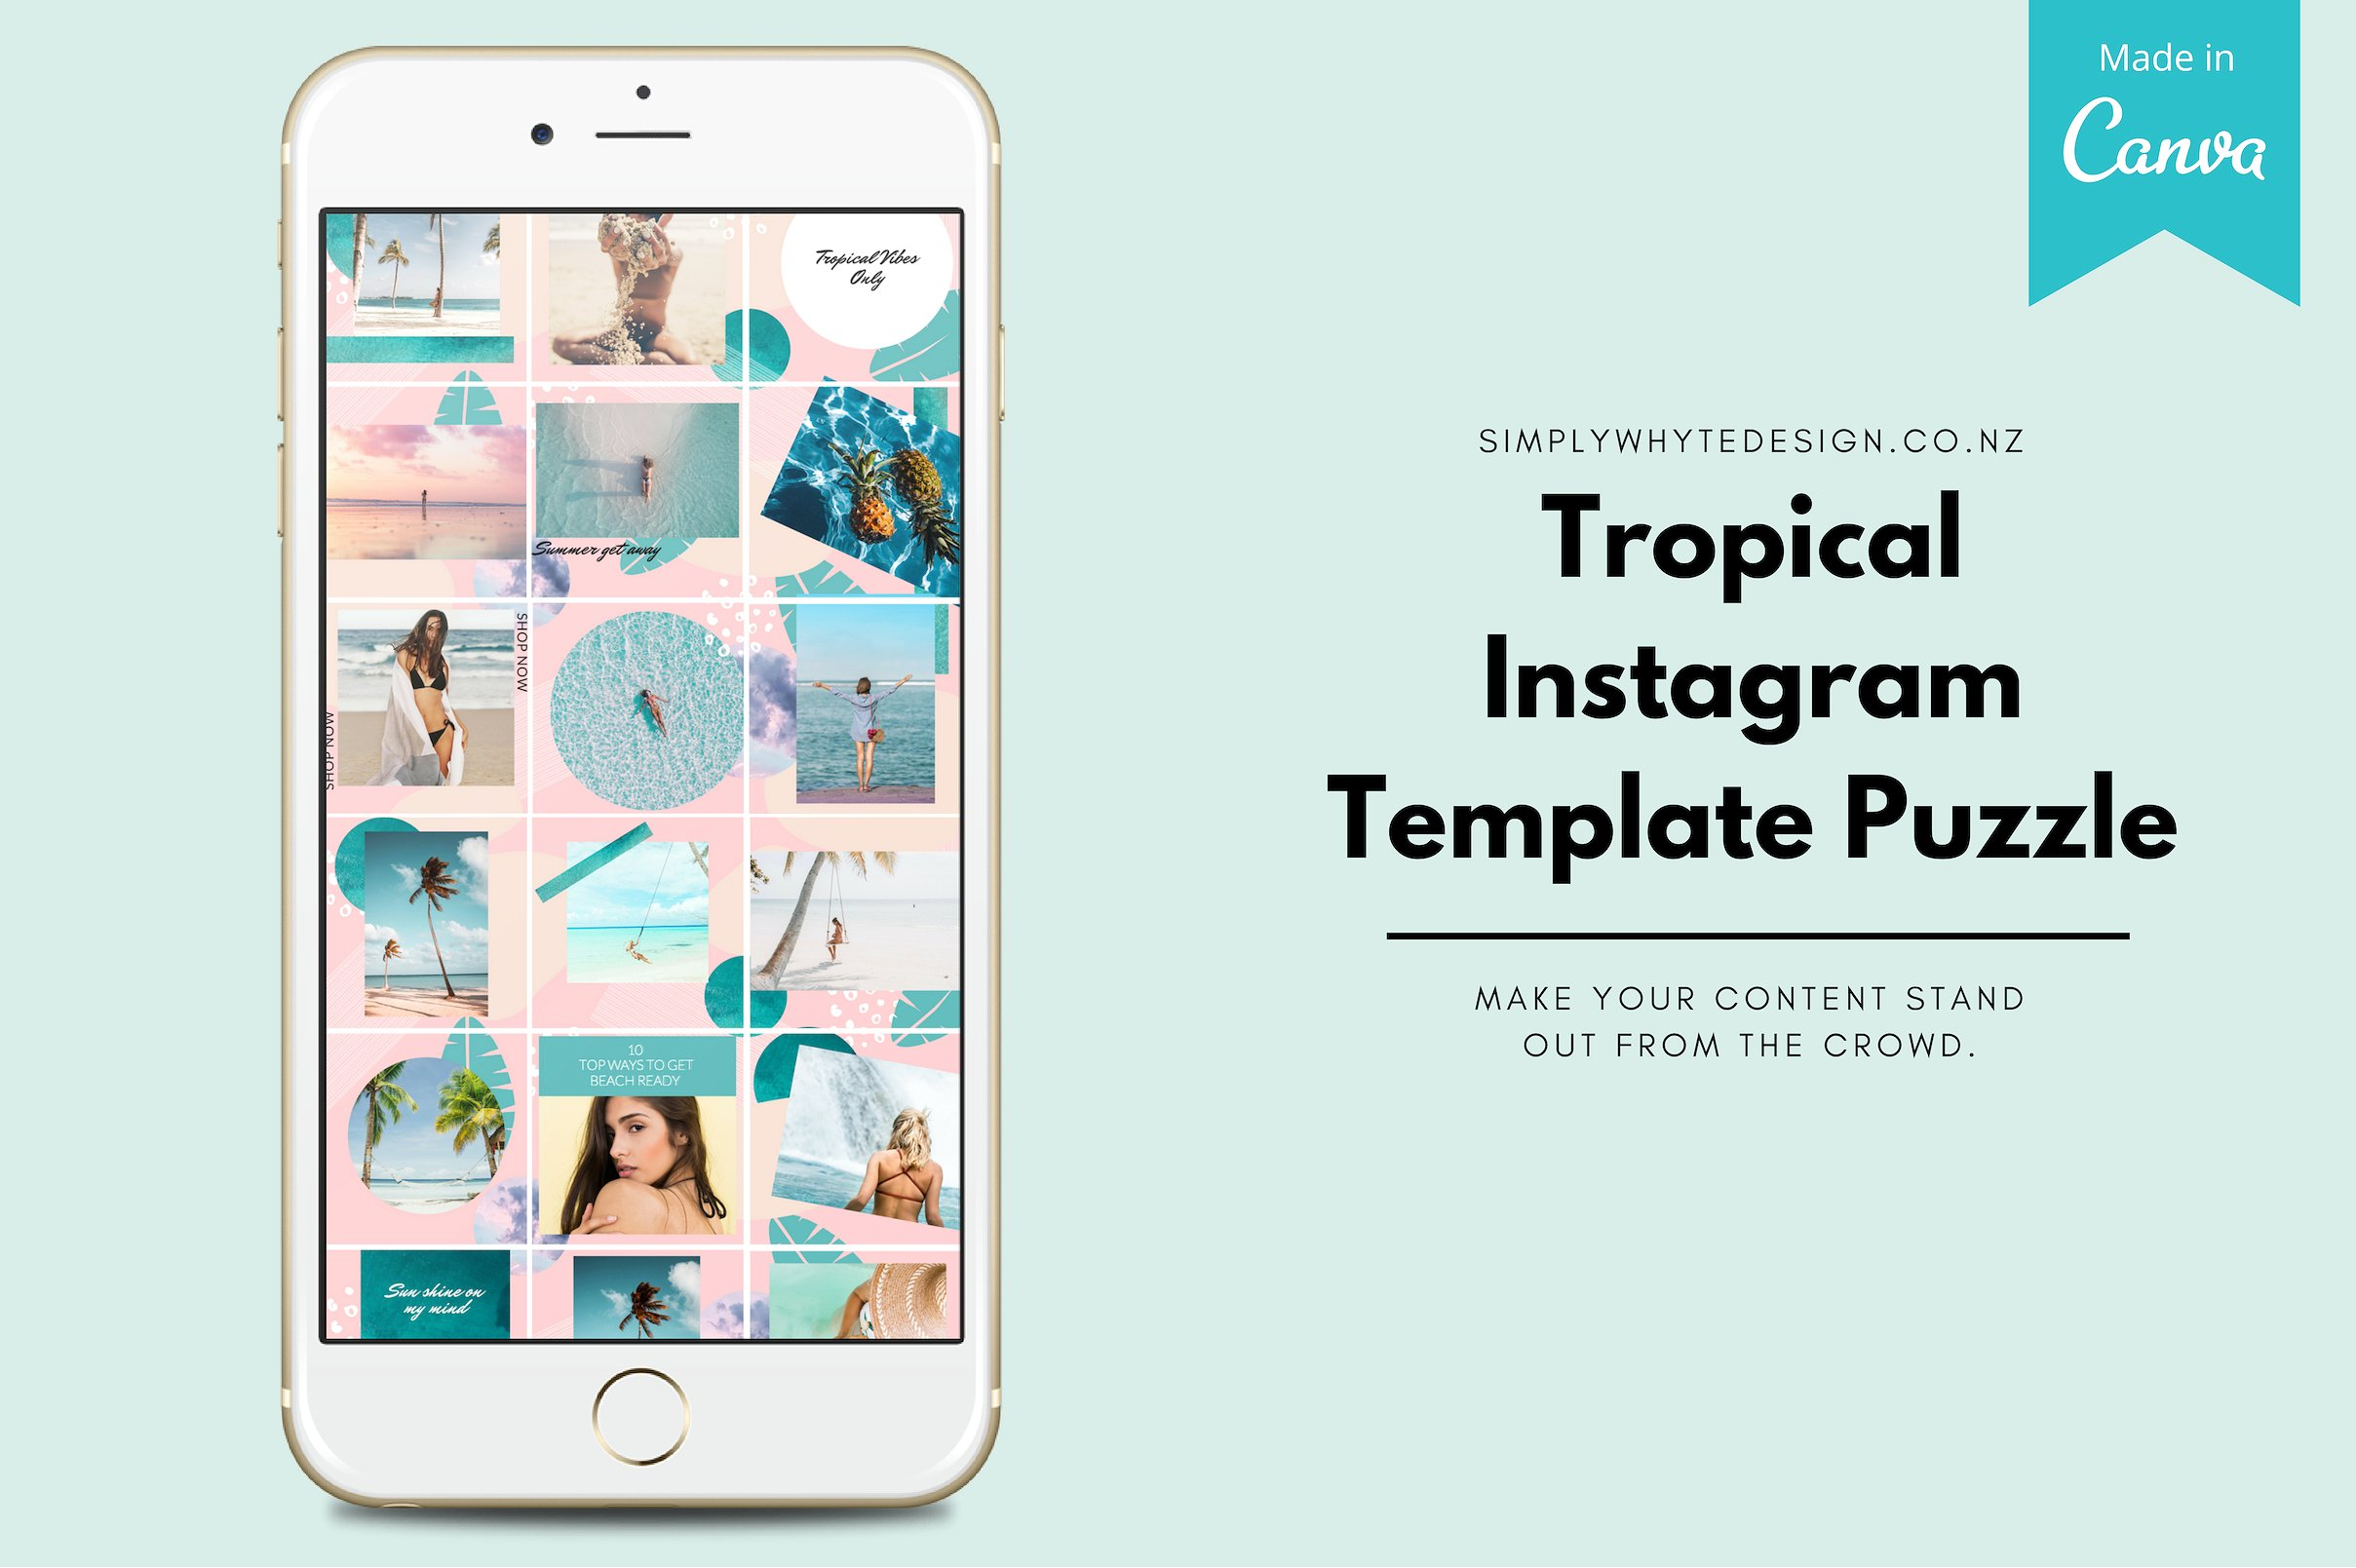 Tropical Instagram Template Puzzle